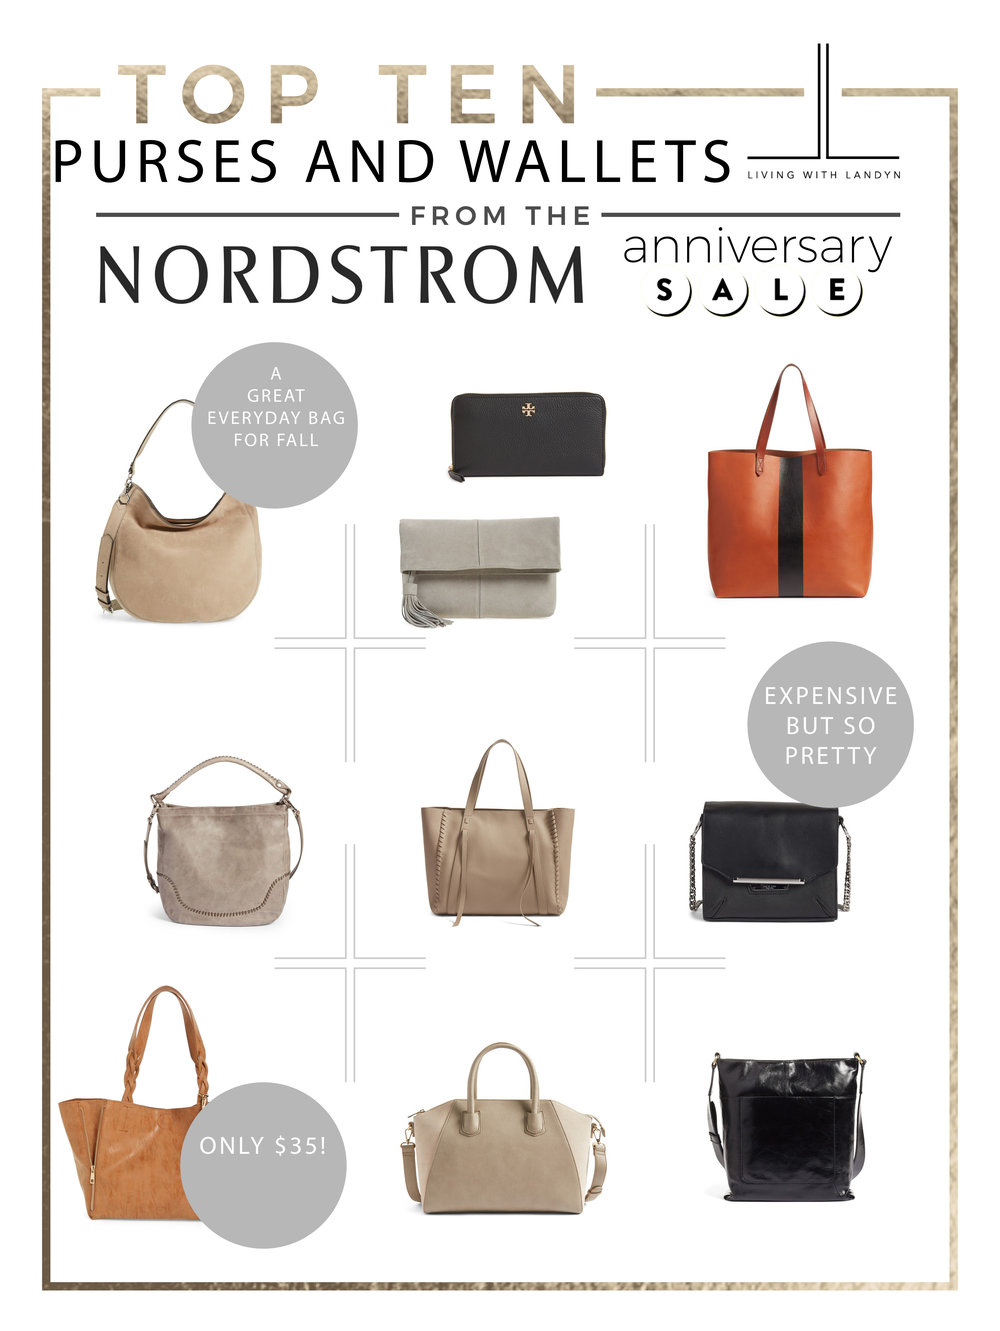 TOP 10 PURSES AND WALLETS FROM THE NORDSTROM ANNIVERSARY SALE